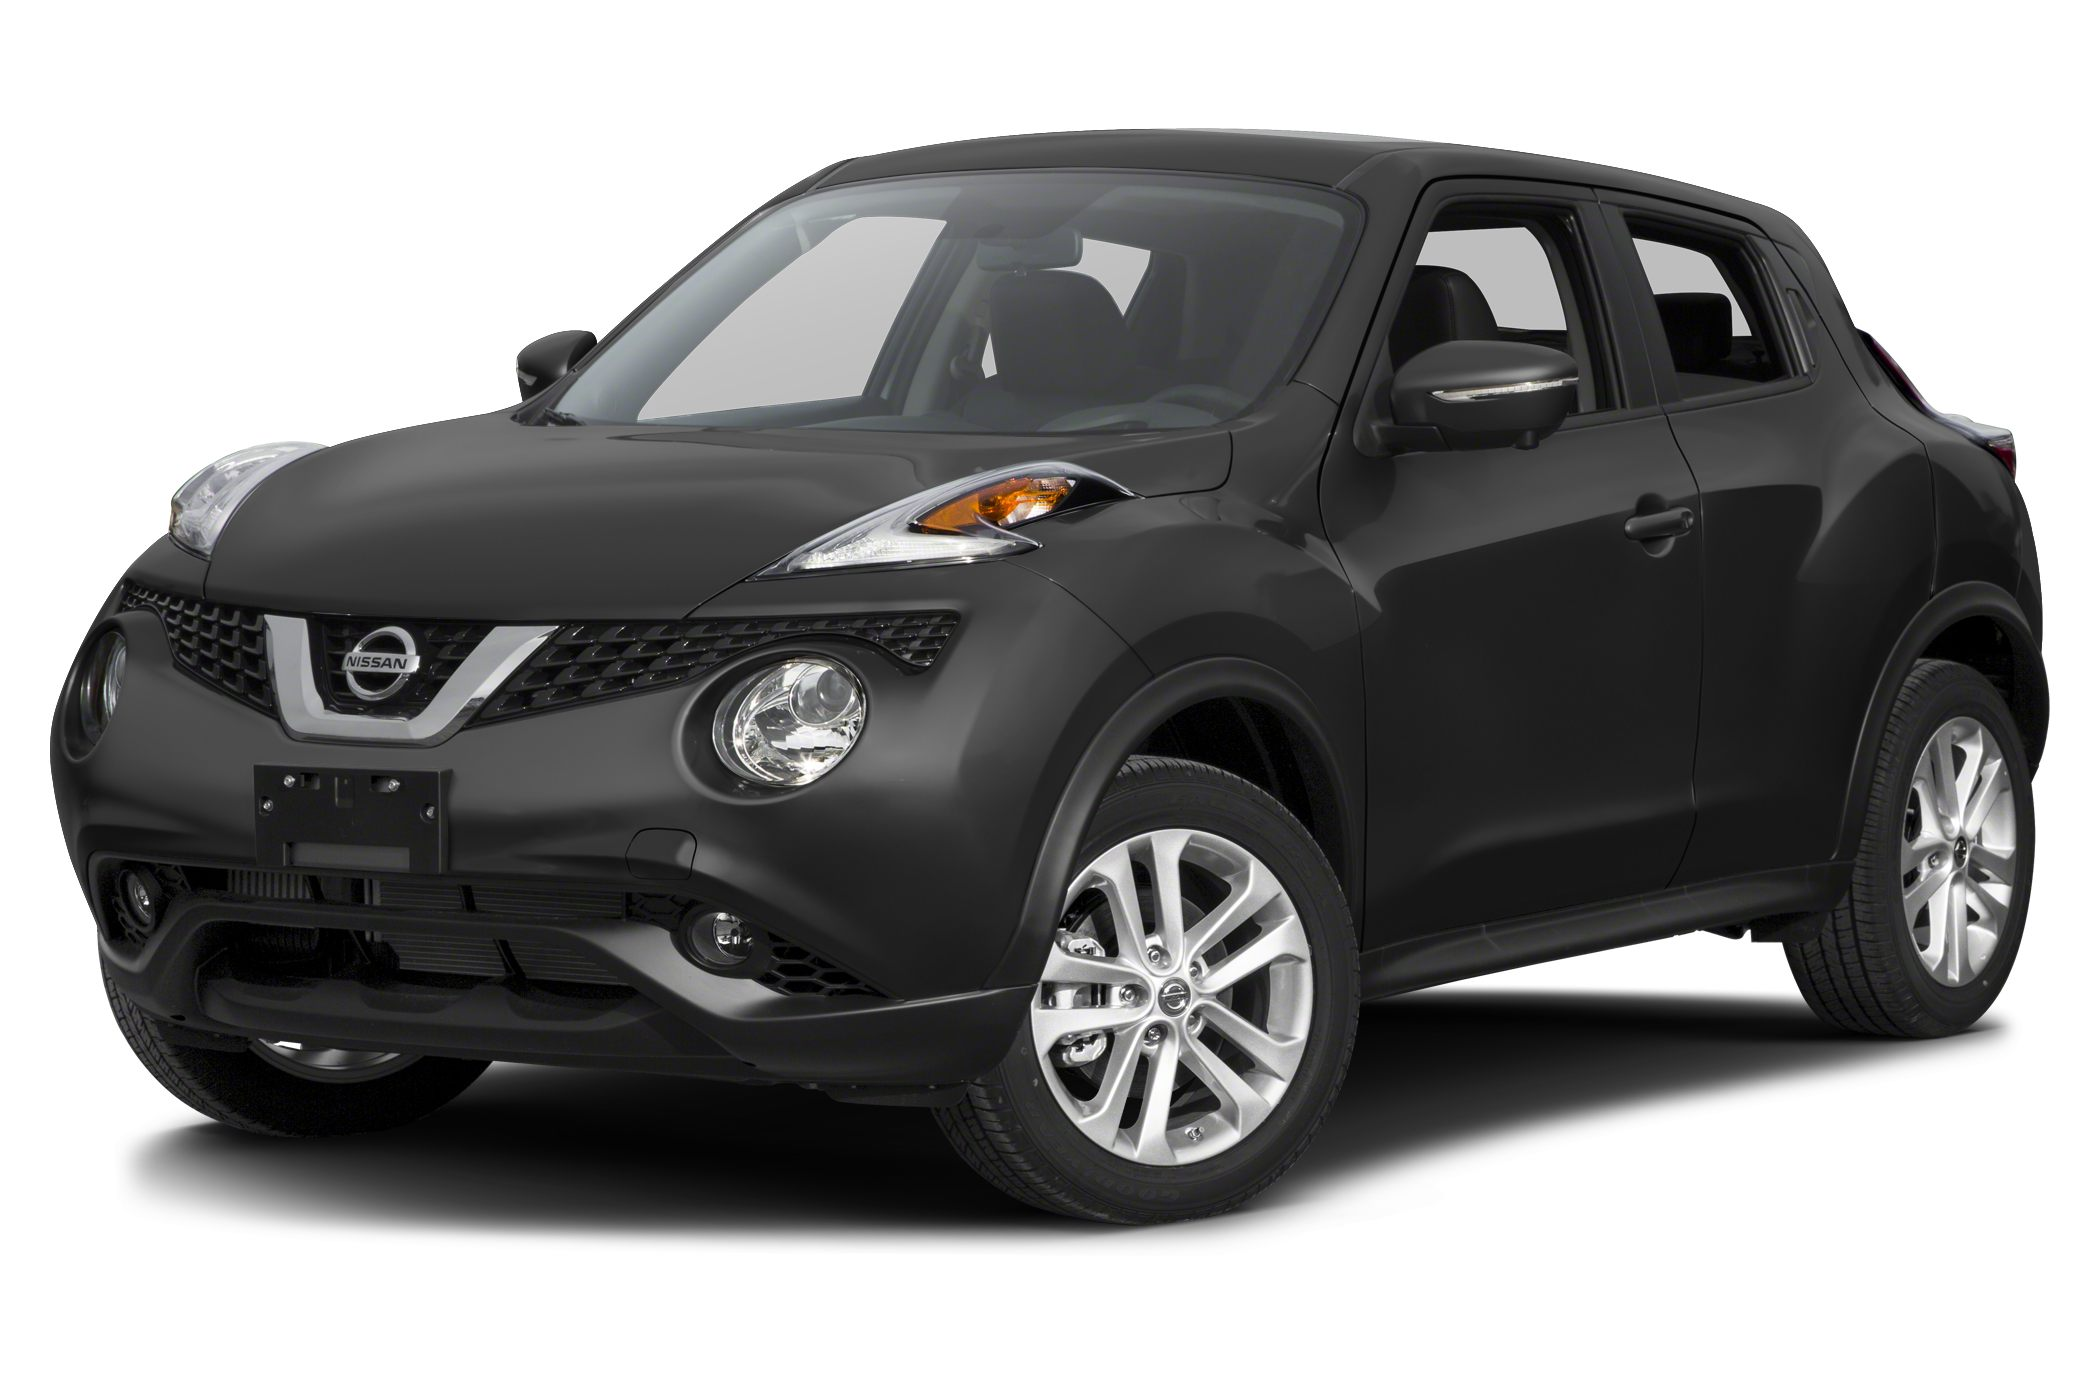 Nissan Juke Sport Utility Models, Price, Specs, Reviews ...